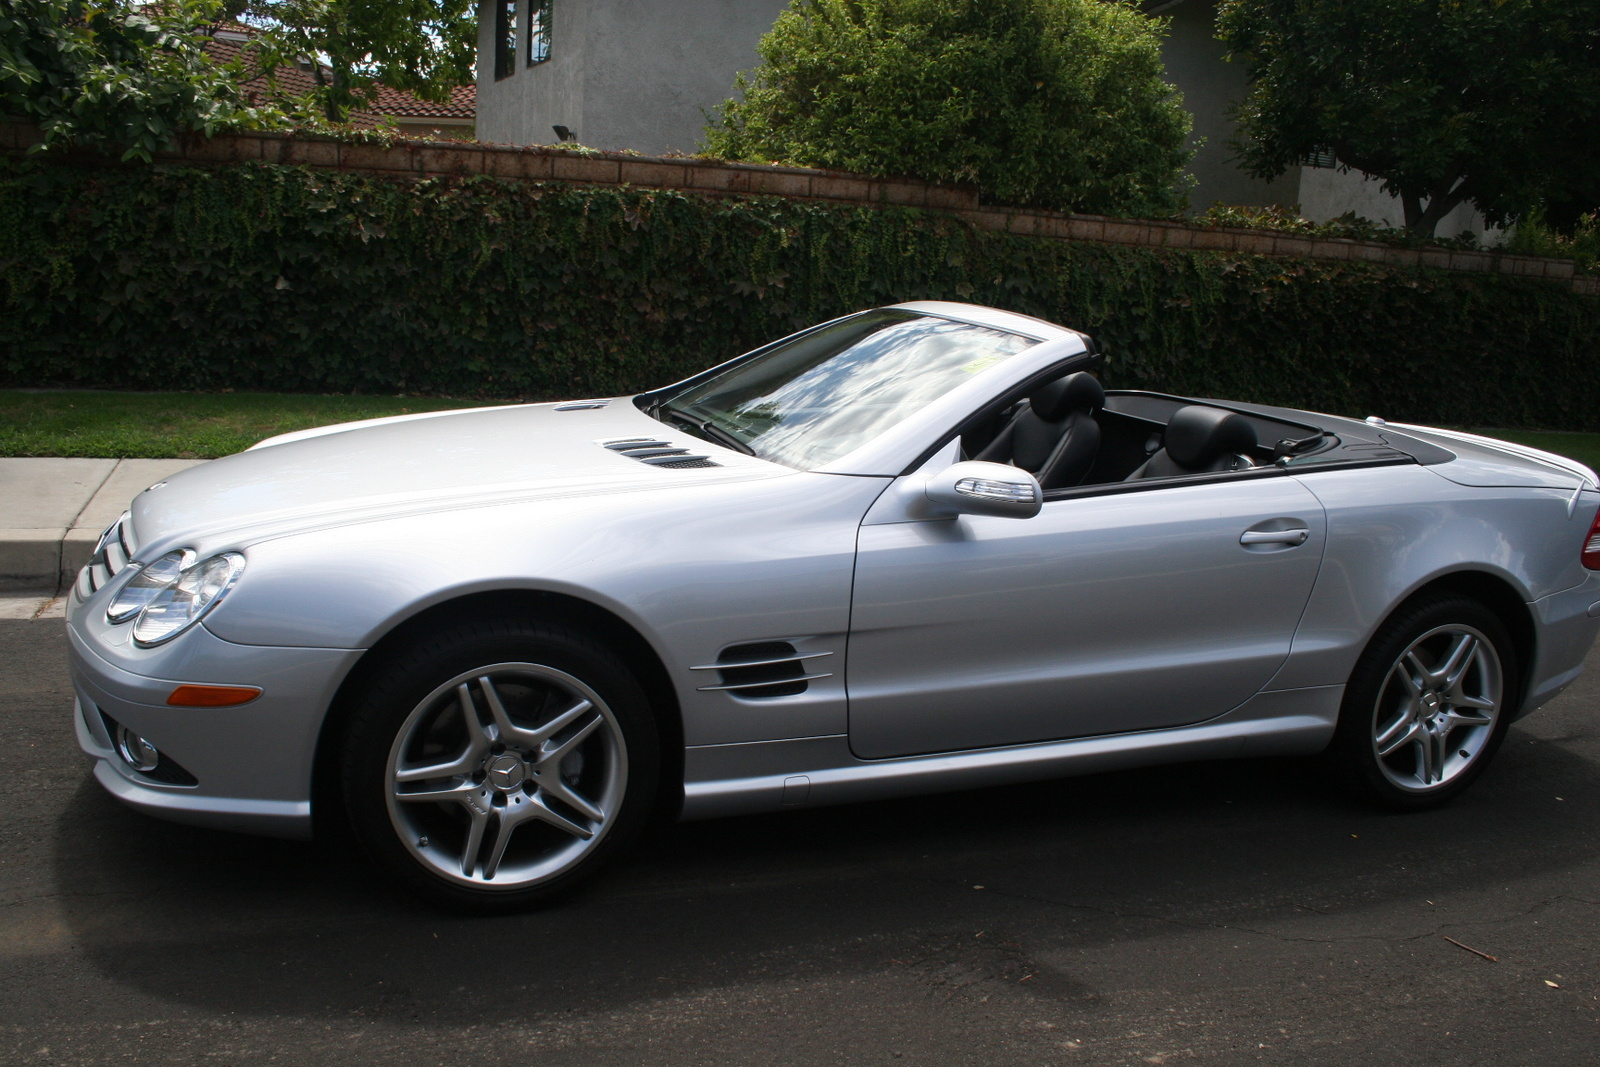 Picture of 2007 mercedes benz sl class sl550 exterior for Mercedes benz s class 2007